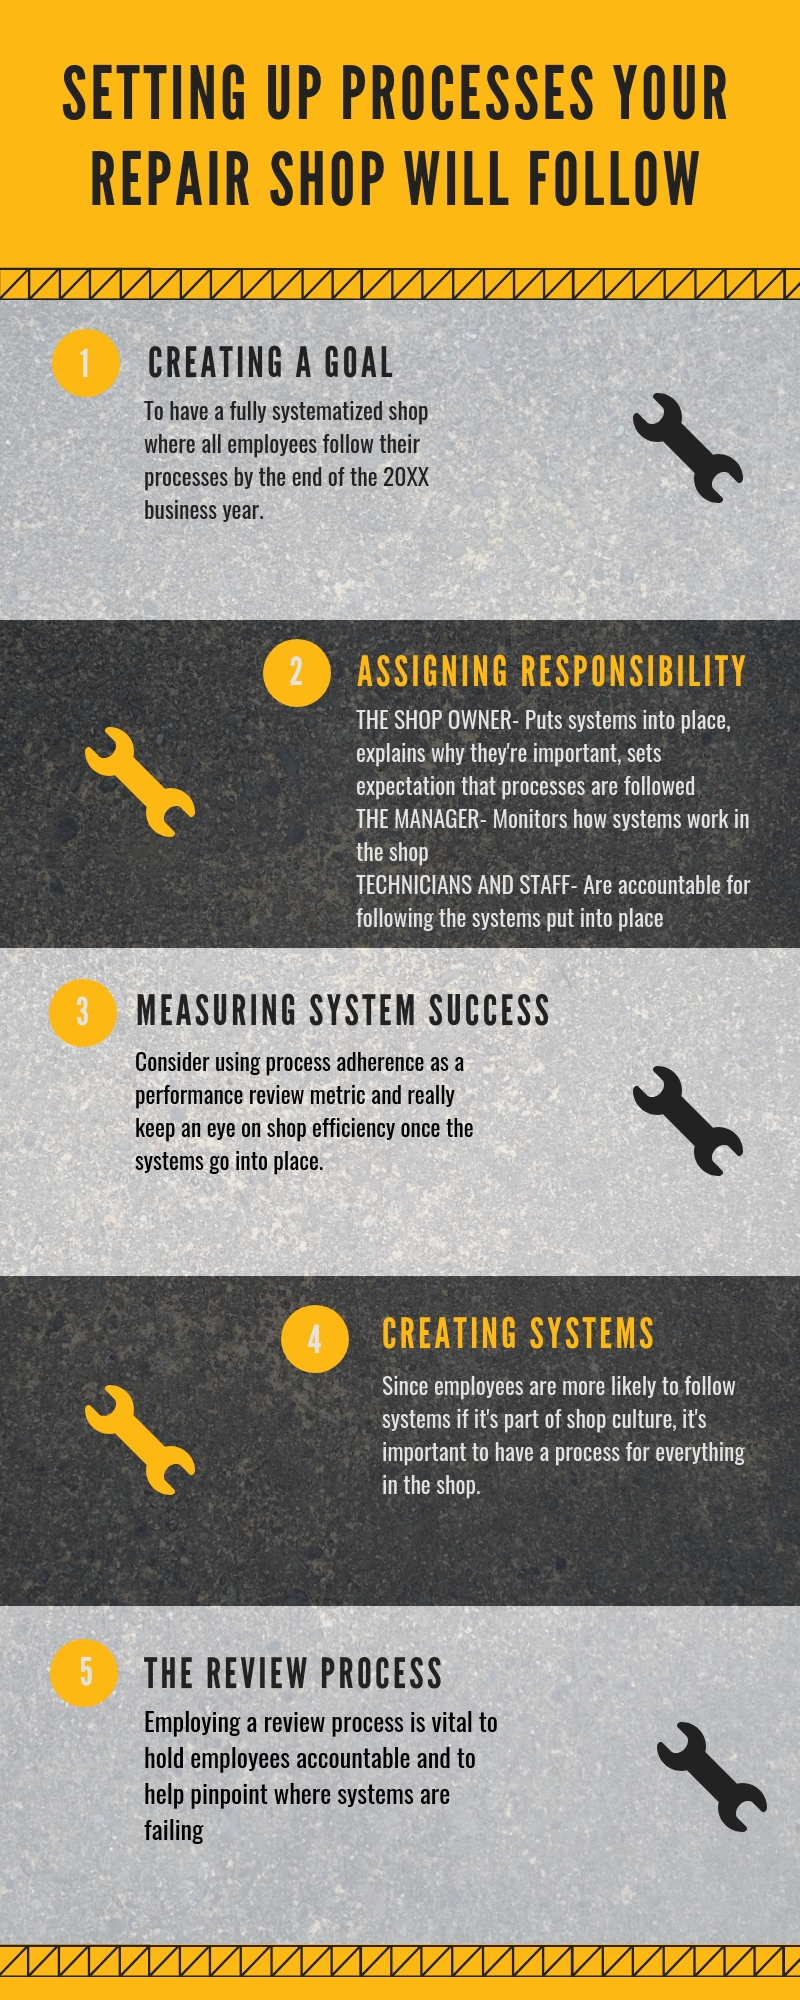 Setting Up Processes Your Repair Shop Will Follow Infographic | Highway & Heavy Parts